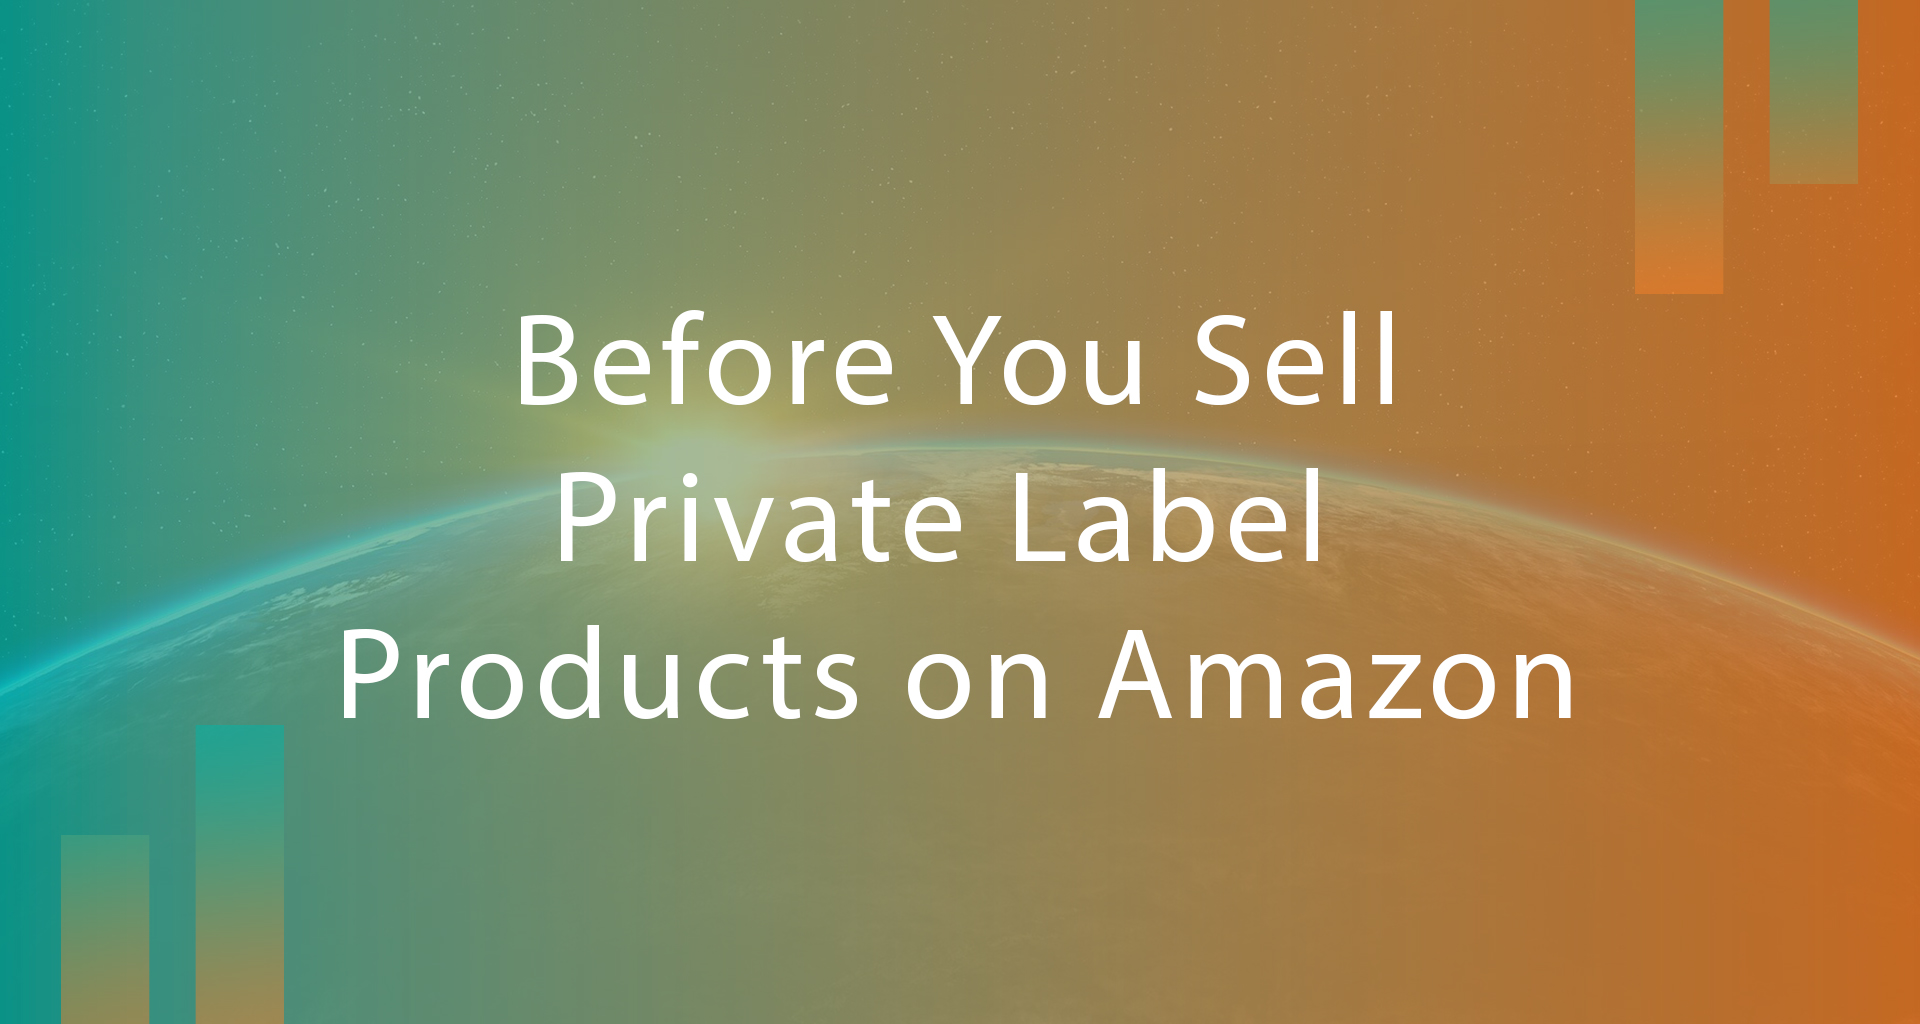 5 things to know before selling private label products